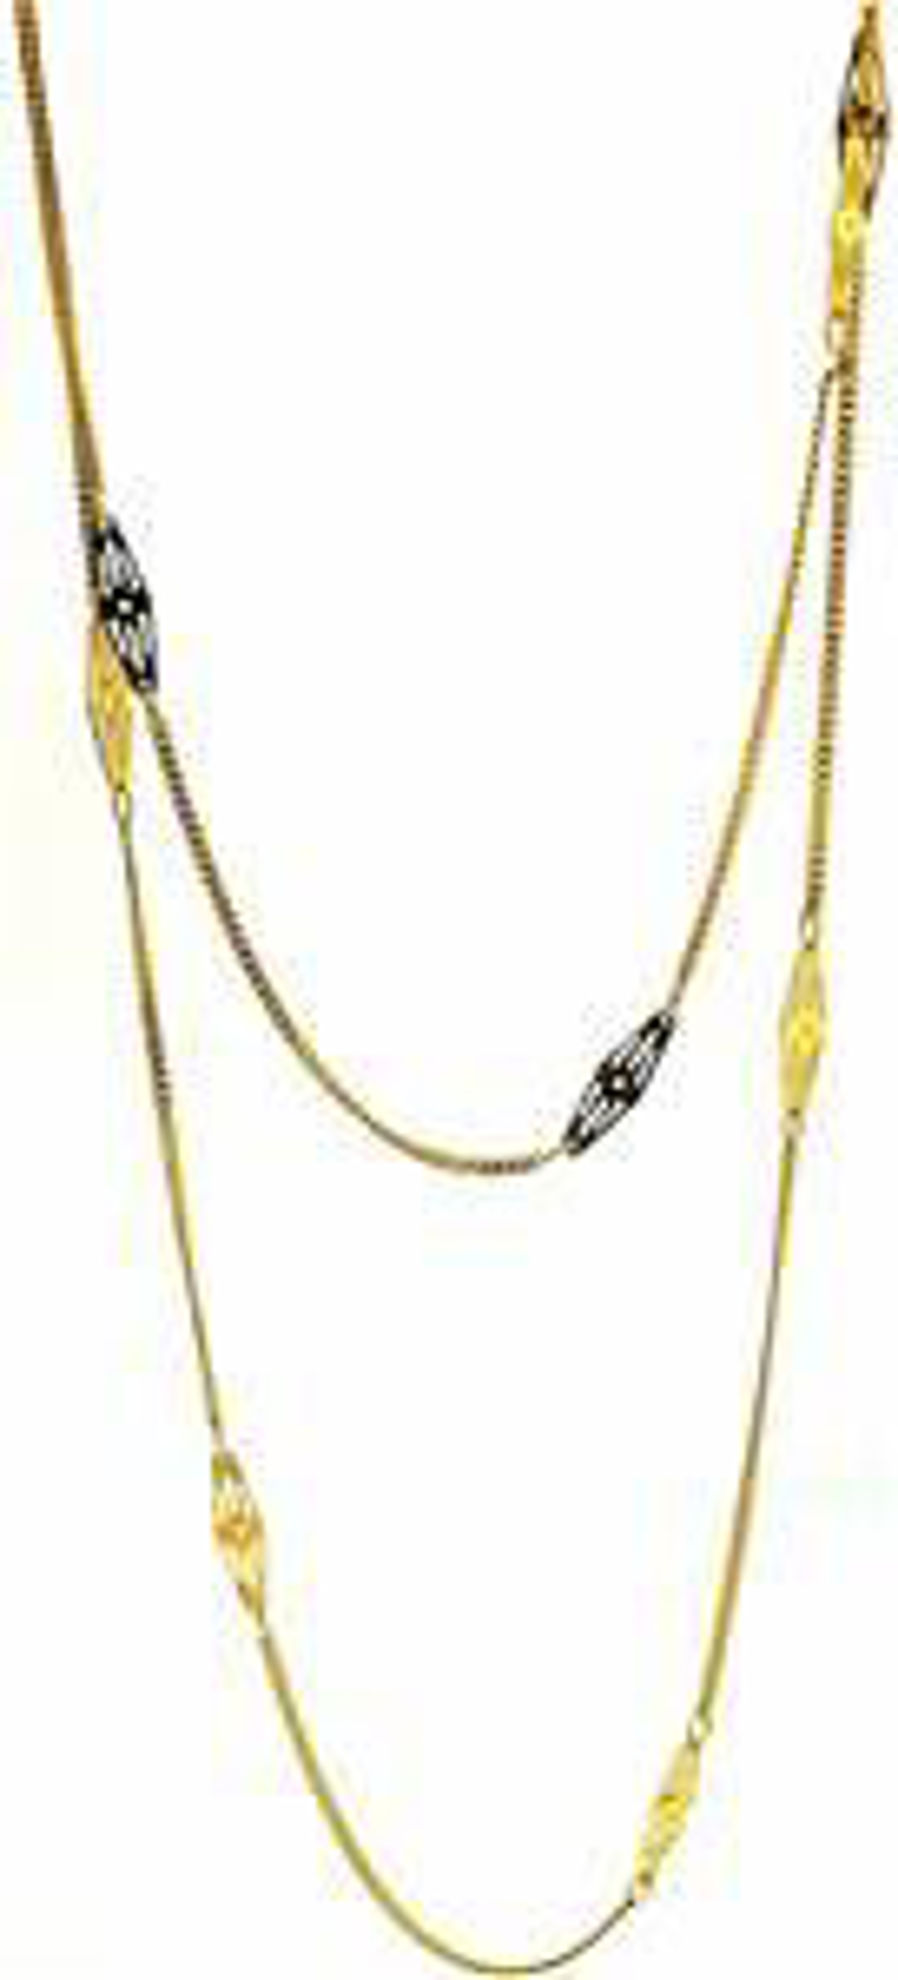 Picture of Chains 14kt-6.3 DWT, 9.8 Grams